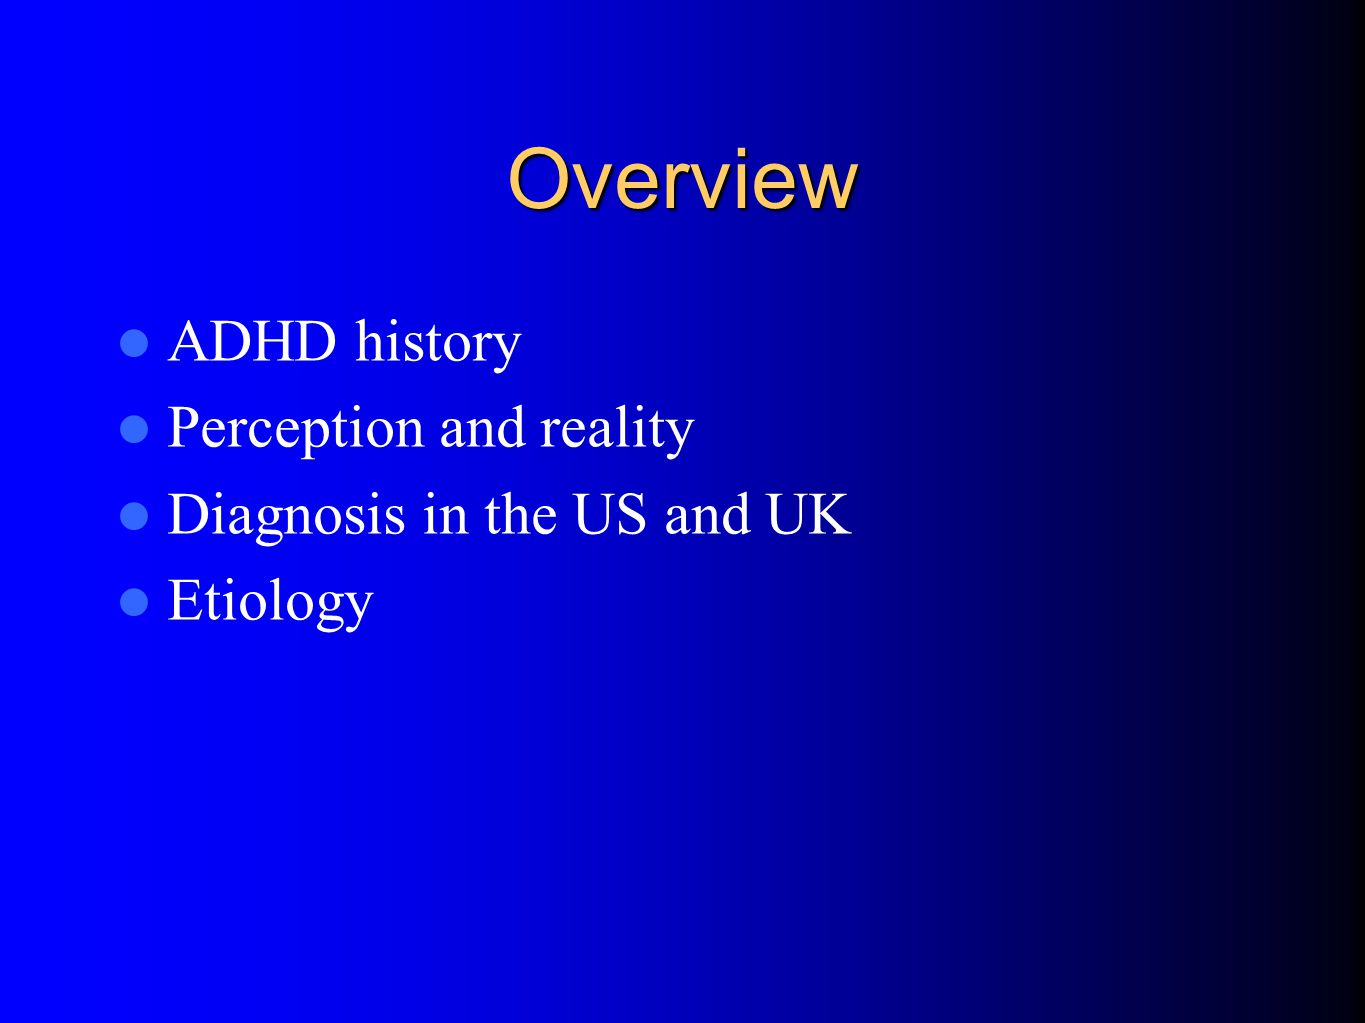 Overview ADHD history Perception and reality Diagnosis in the US and UK Etiology